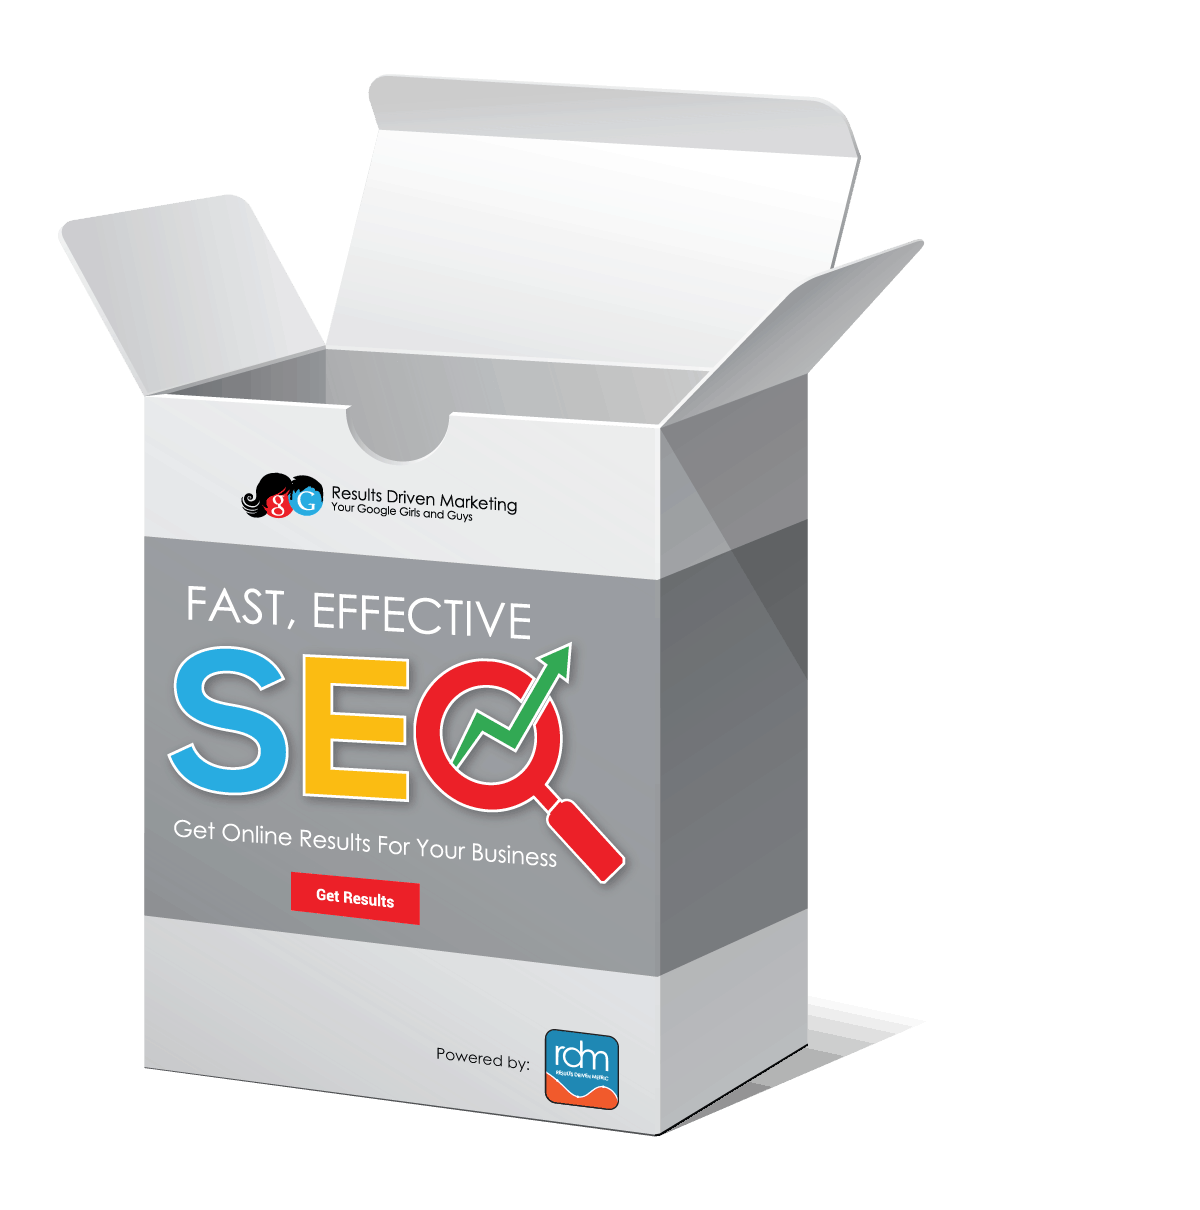 SEO IN A Box™ by Results Driven Marketing®. LLC for fast and Effective SEO at minimal costs